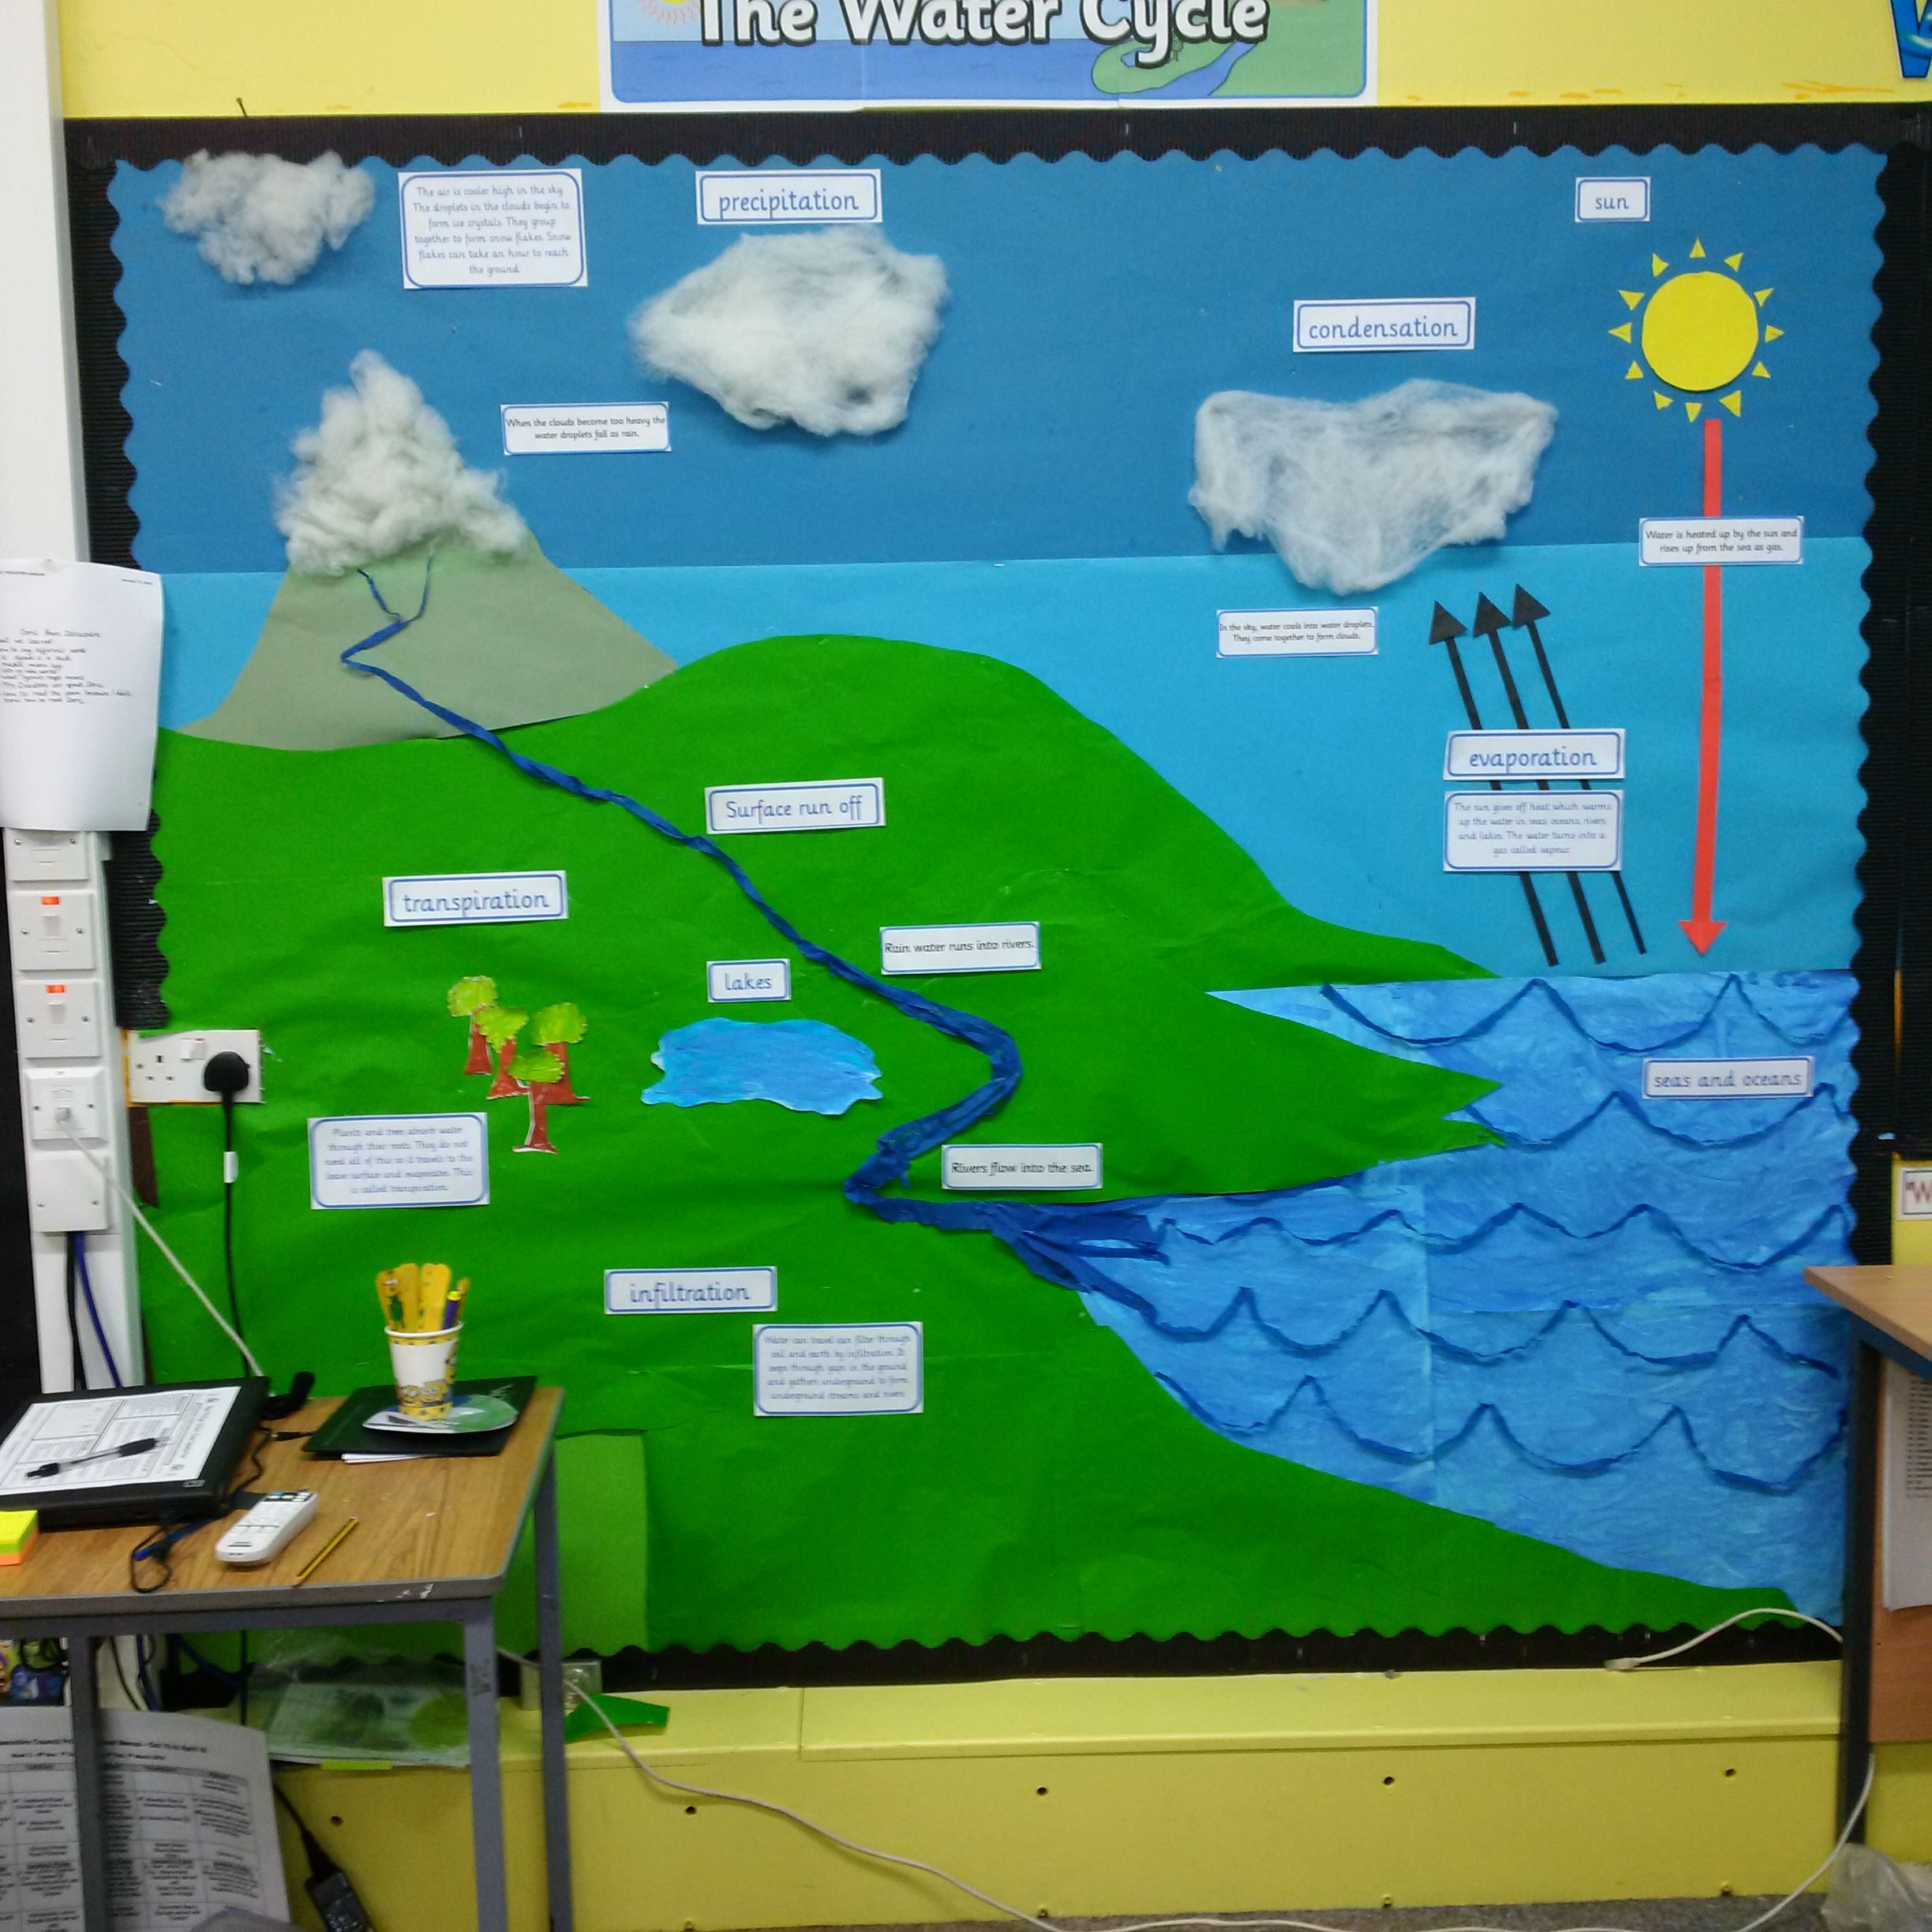 Our Water Cycle Wall Display Is Still A Work In Progress